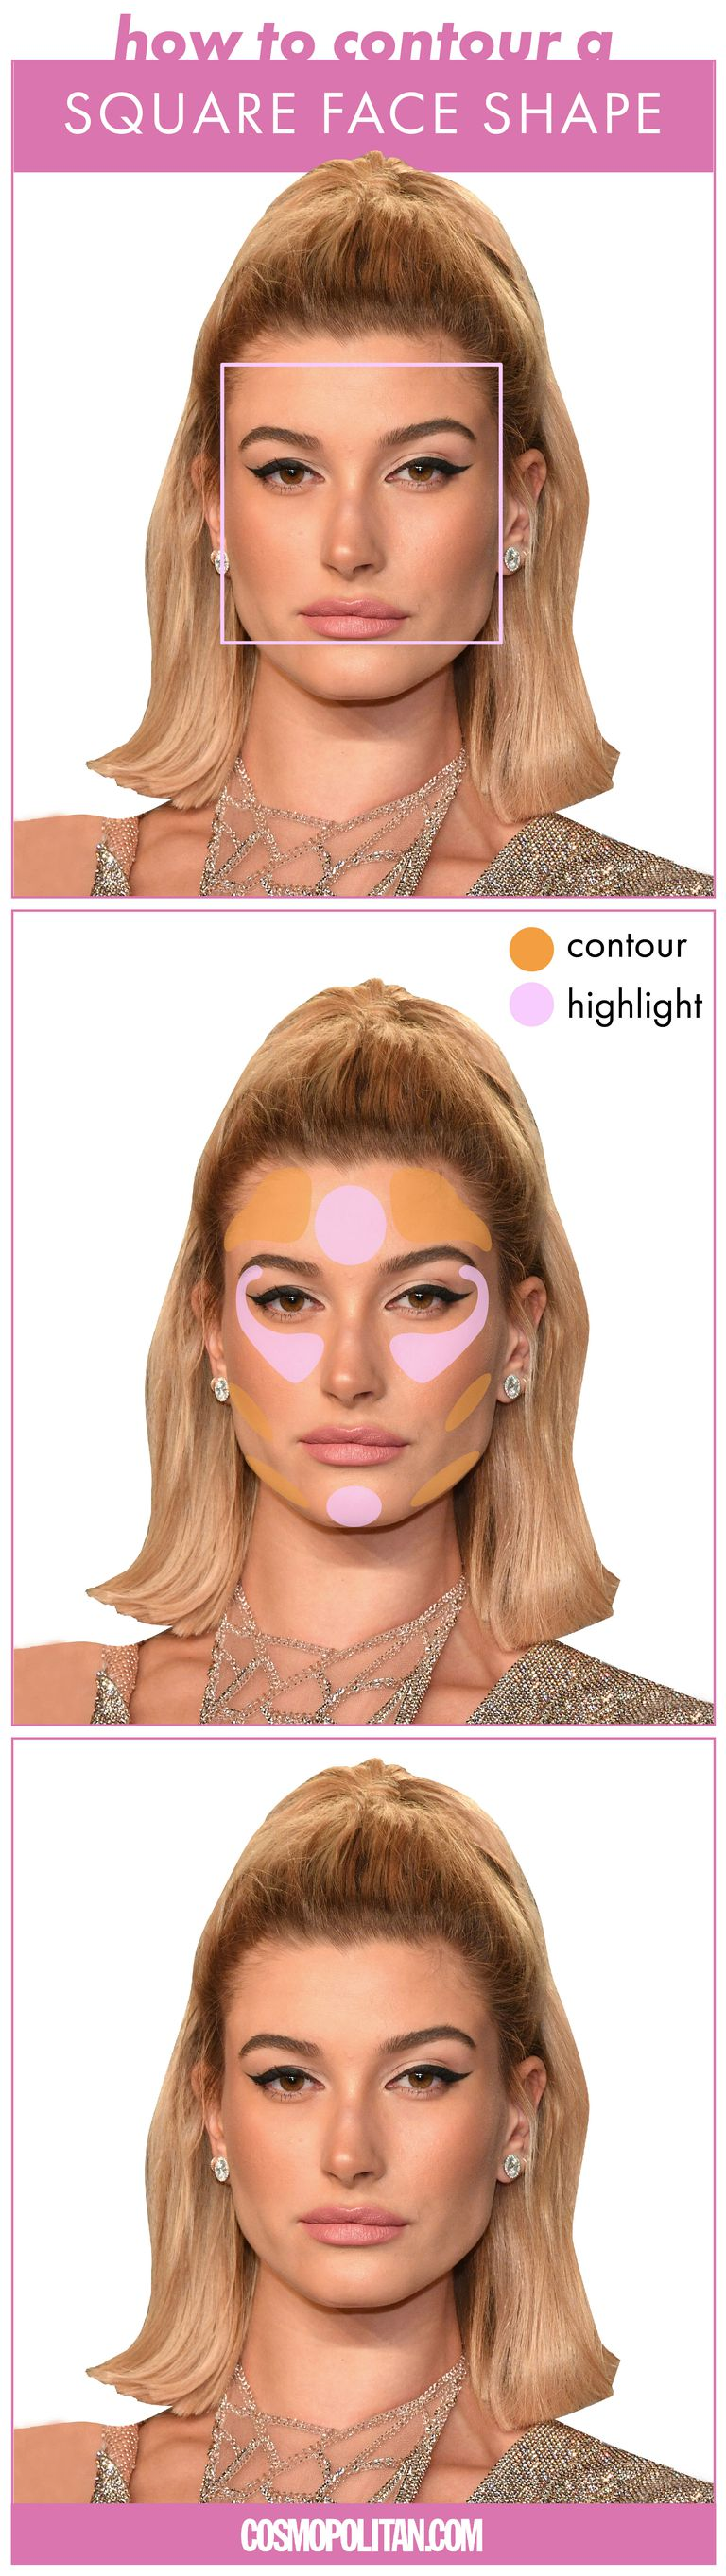 Exactly How To Contour And Highlight Based On Your Face Shape